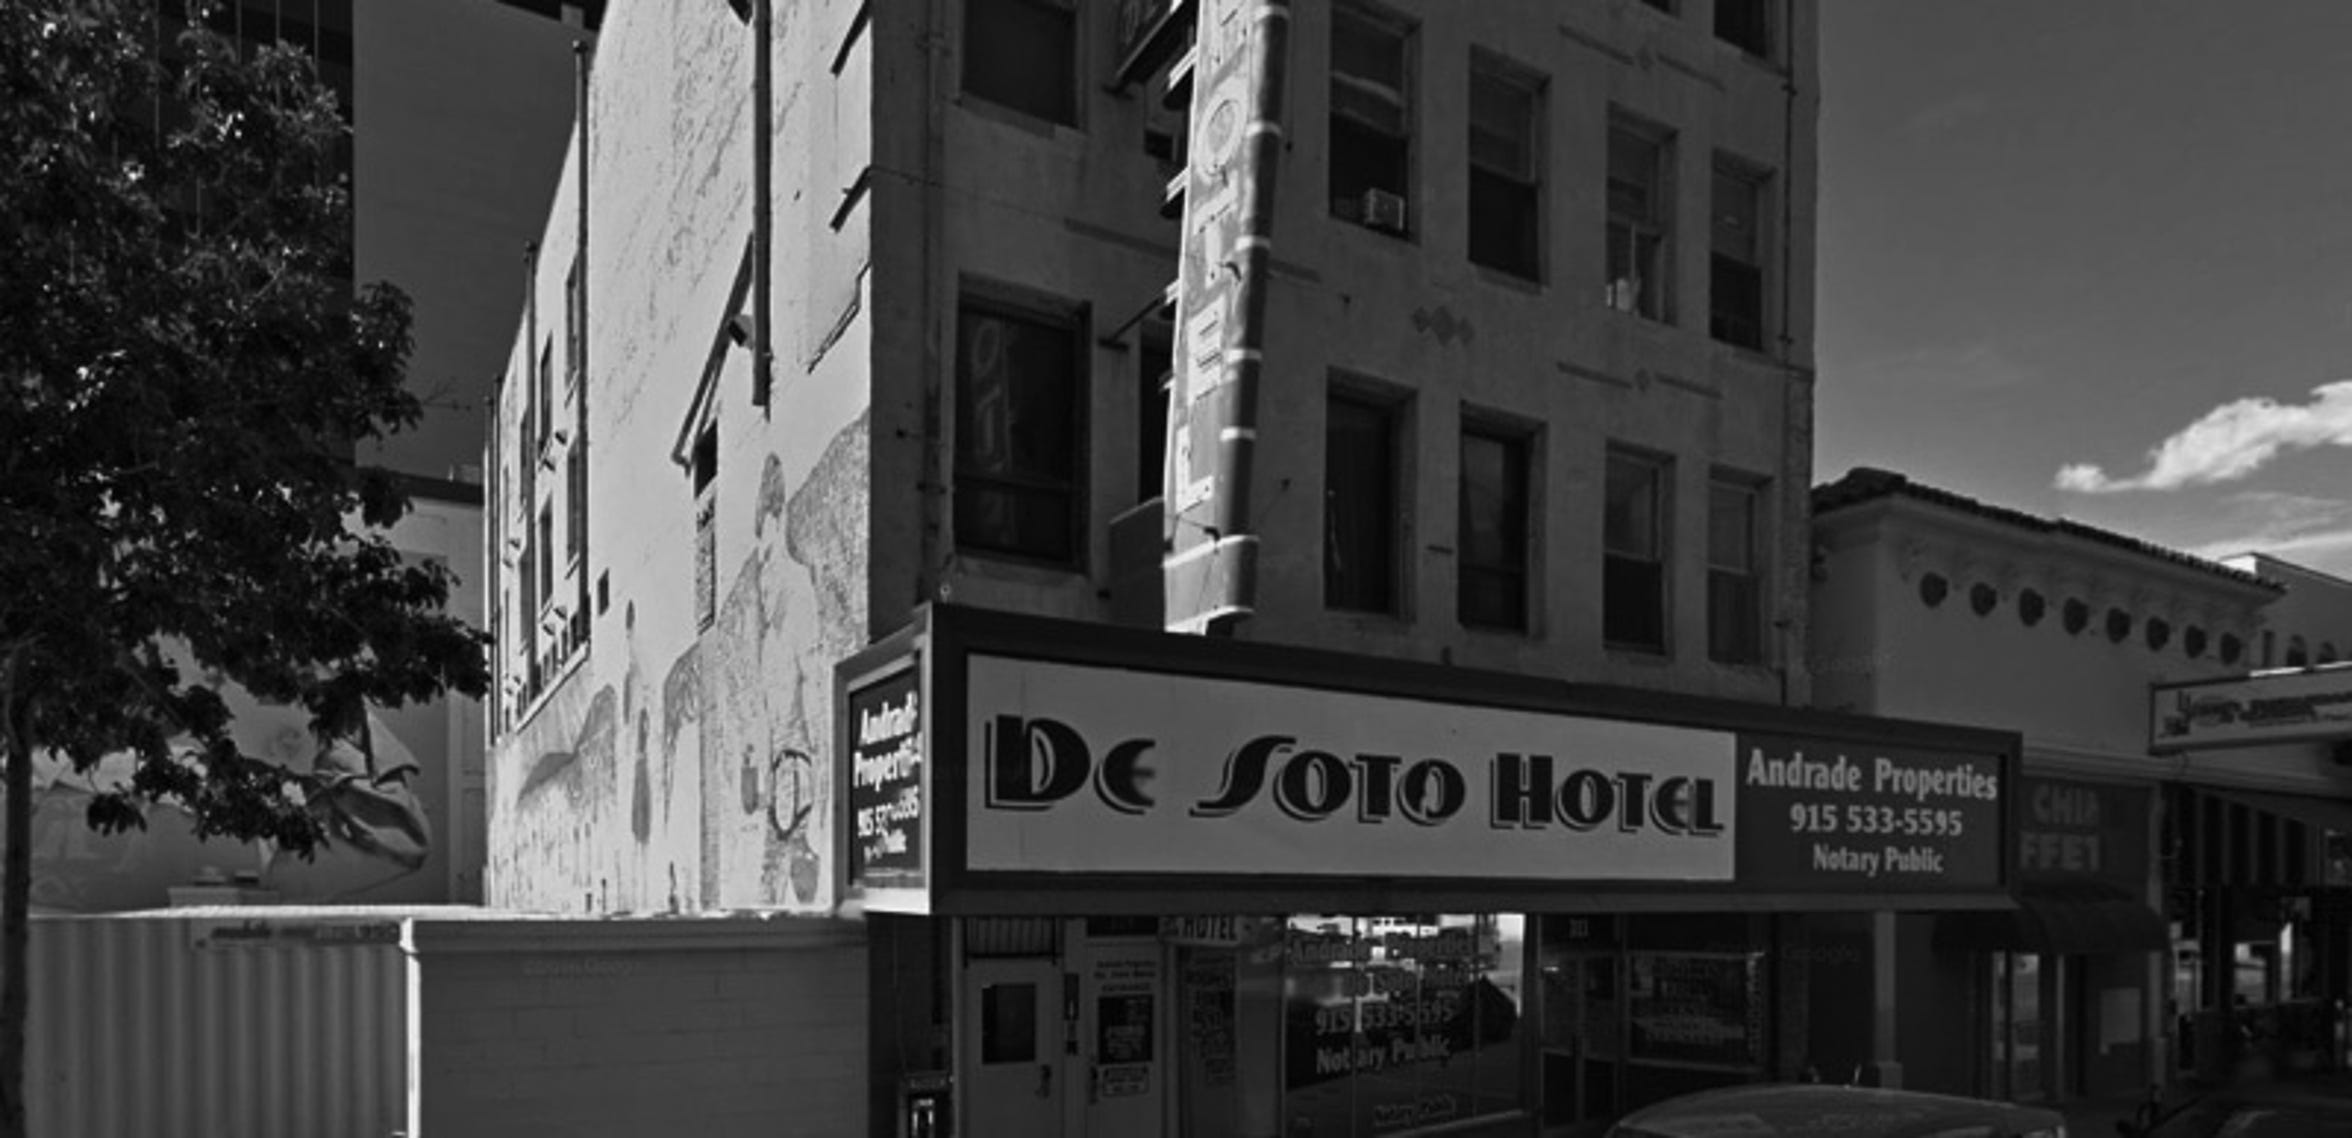 The De Soto Hotel in El Paso